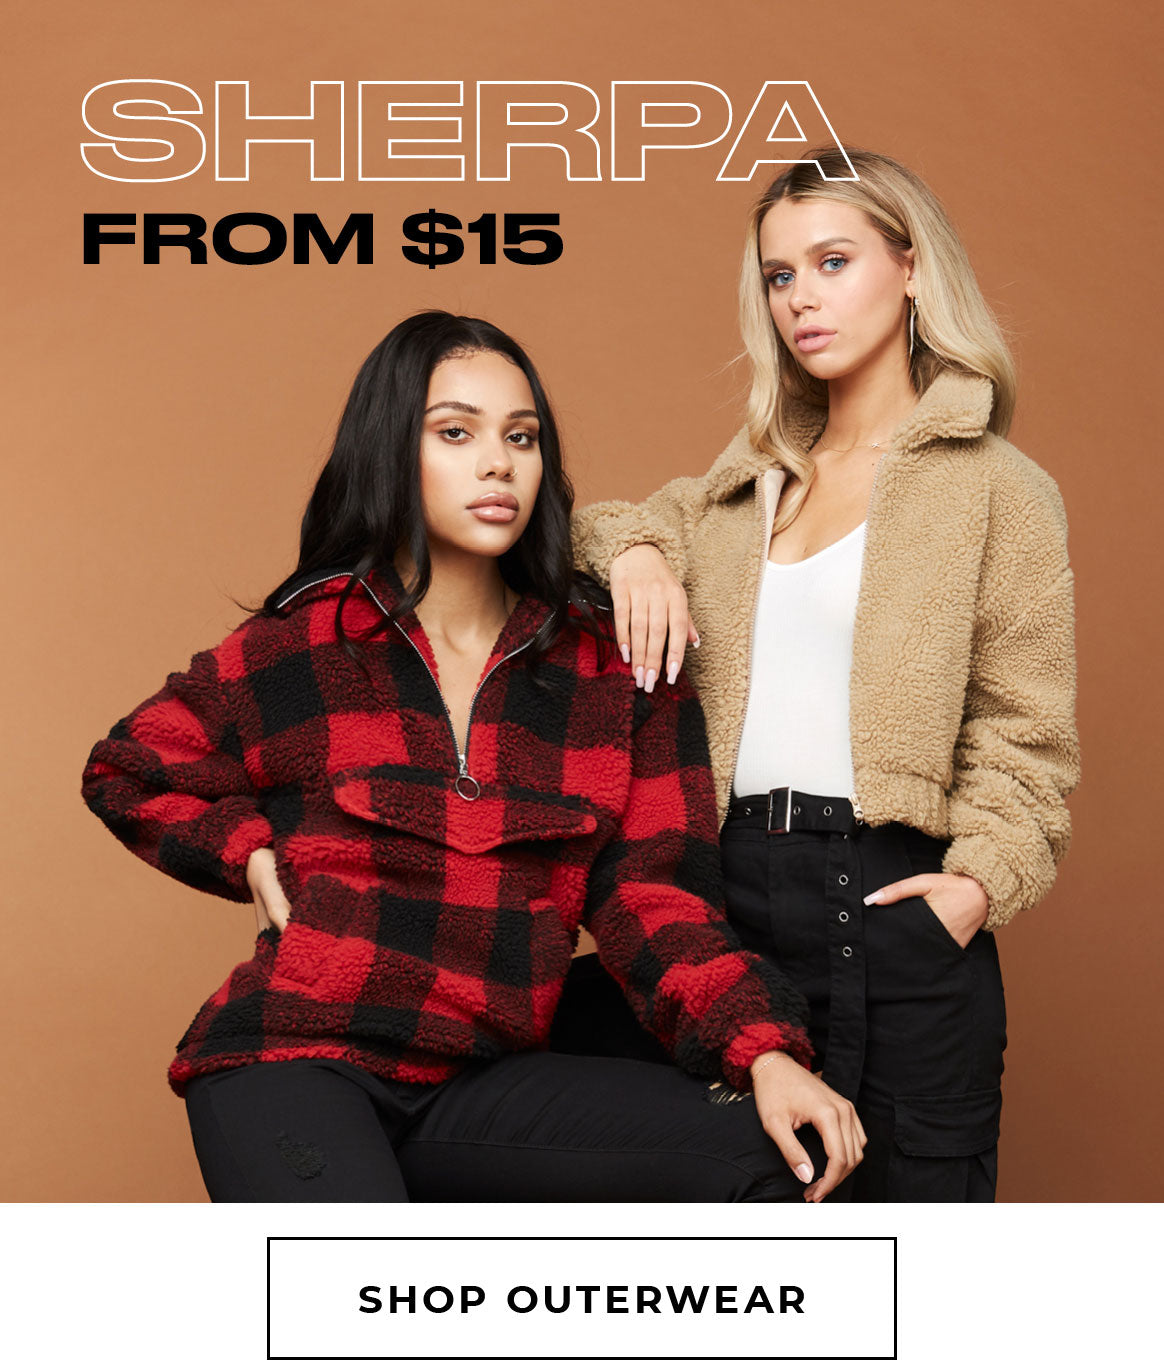 Charlotte Russe | Sherpa from $15 - Shop Outerwear